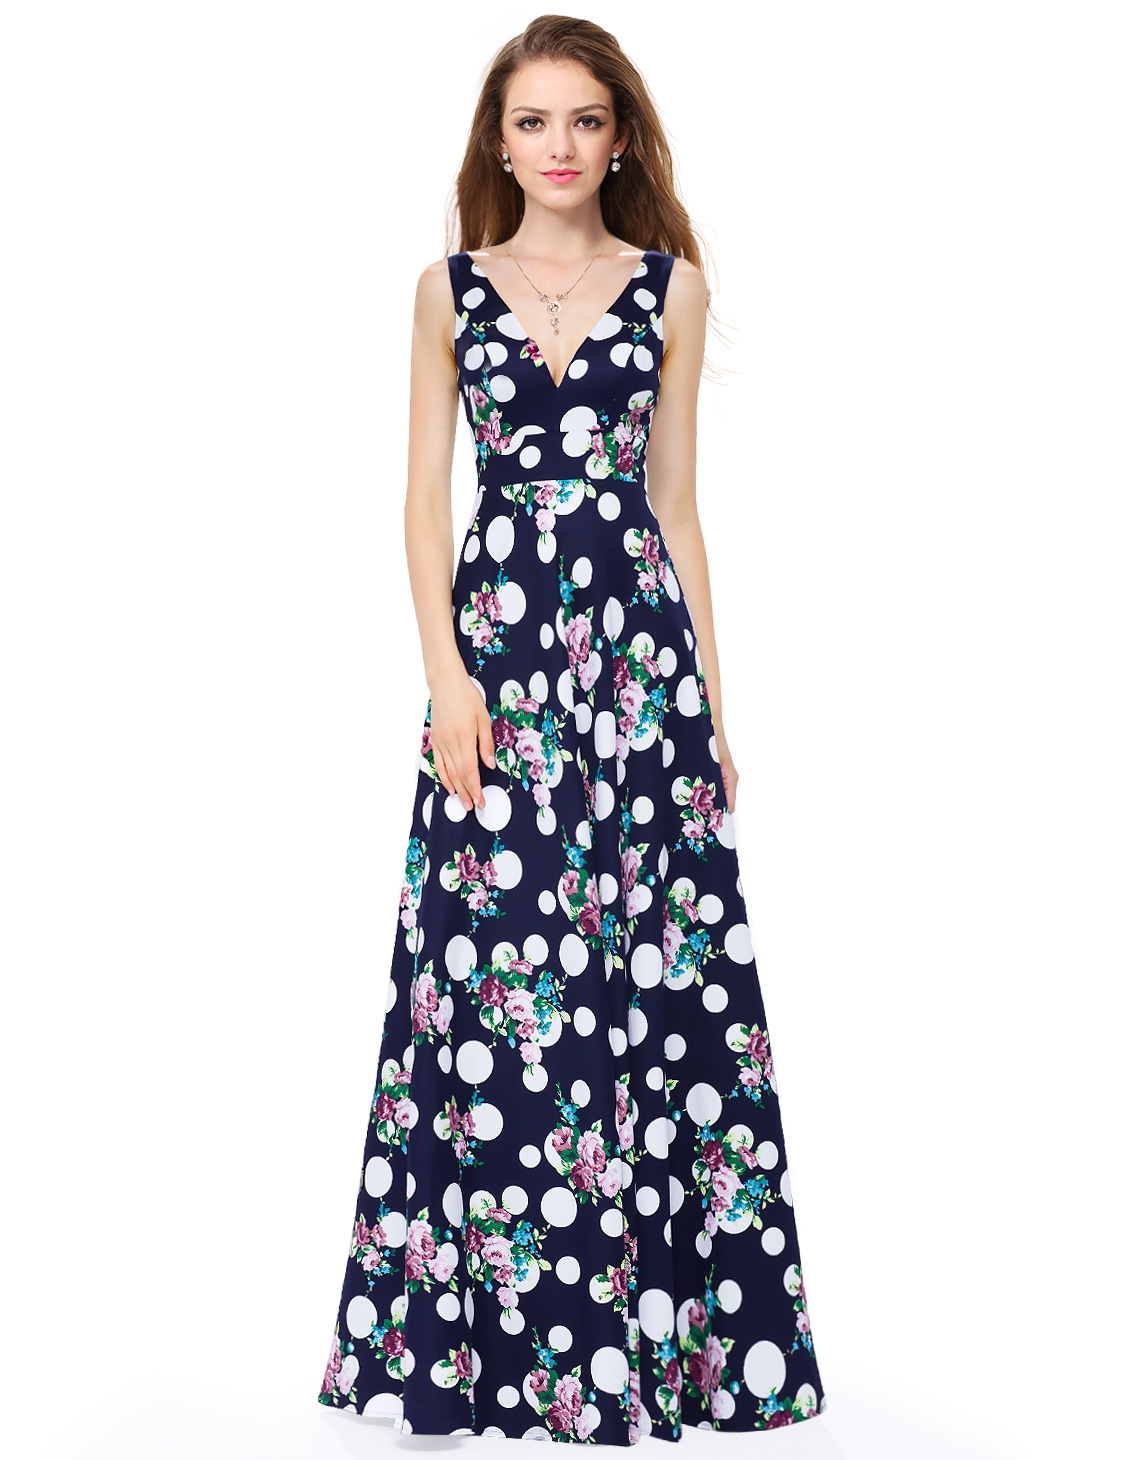 Ever-Pretty-Women-039-s-Fashion-V-neck-Sleeveless-Printed-Evening-Party-Dress-08955